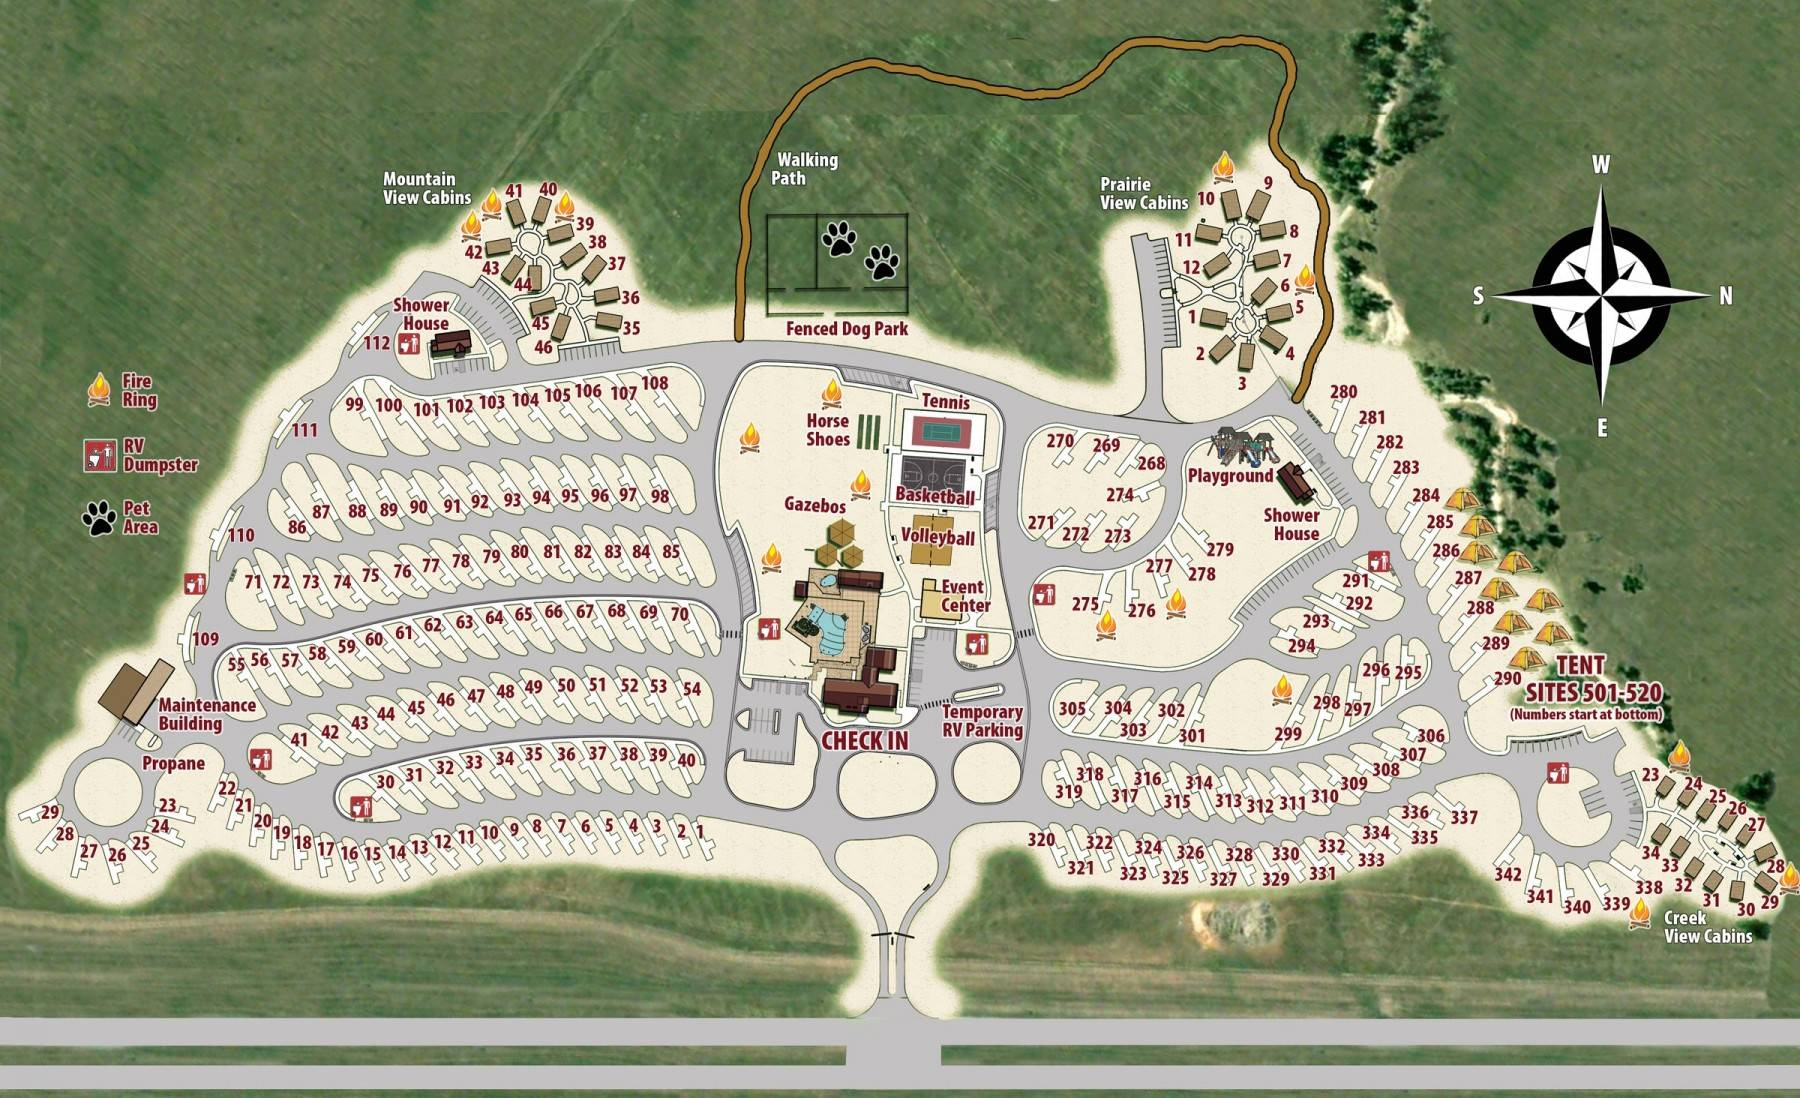 Elkhorn Ridge Map of Campground, Resort, RV sites and tent sites